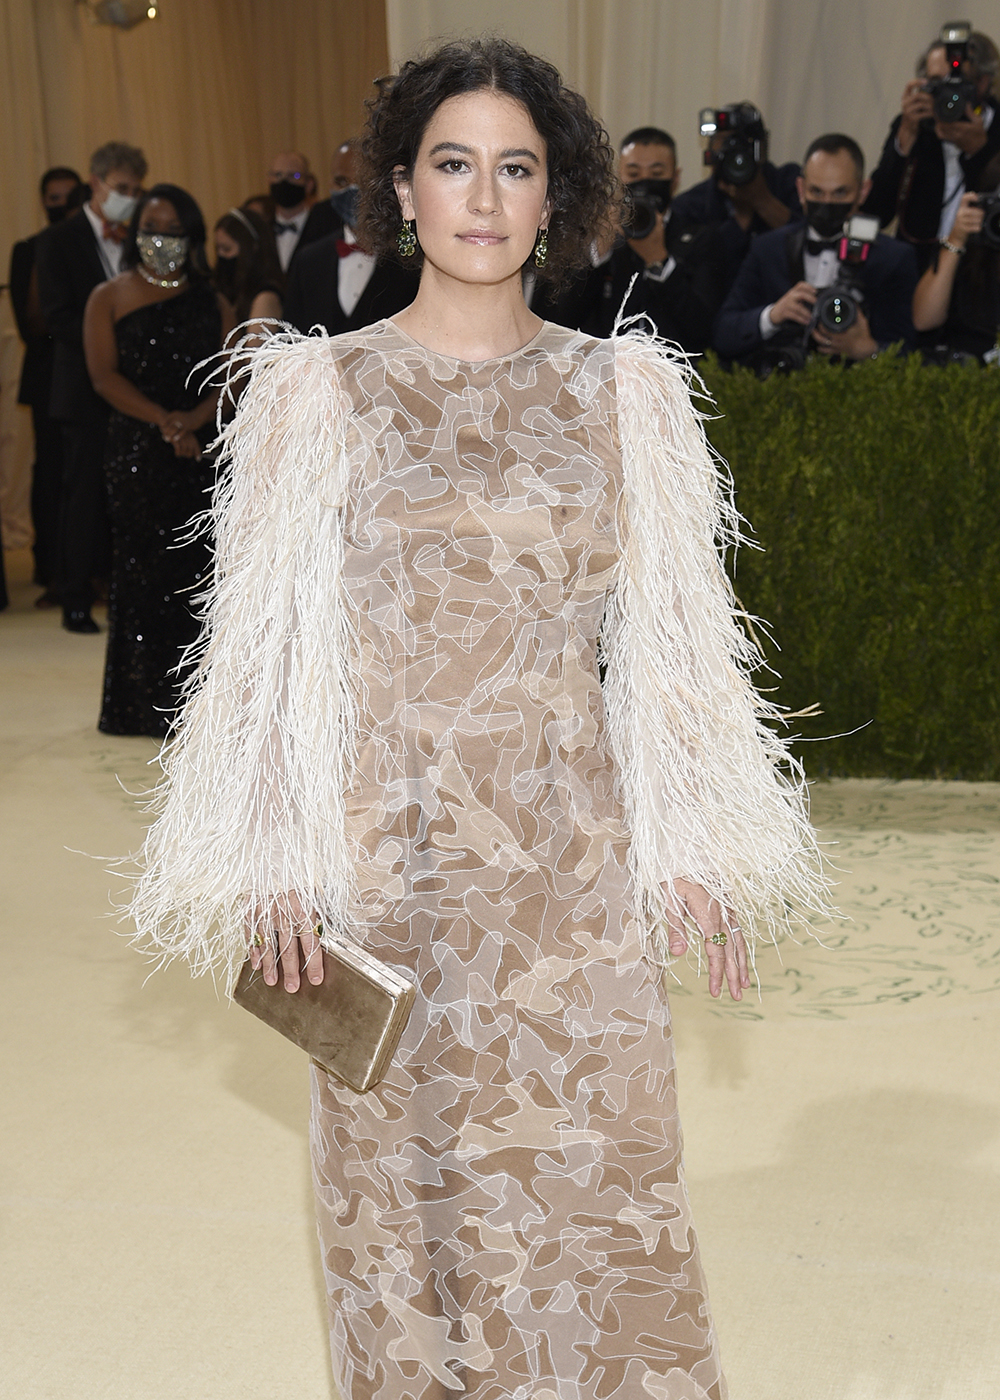 """Ilana Glazer attends The Metropolitan Museum of Art's Costume Institute benefit gala celebrating the opening of the """"In America: A Lexicon of Fashion"""" exhibition on Monday, Sept. 13, 2021, in New York. (Photo by Evan Agostini/Invision/AP)"""